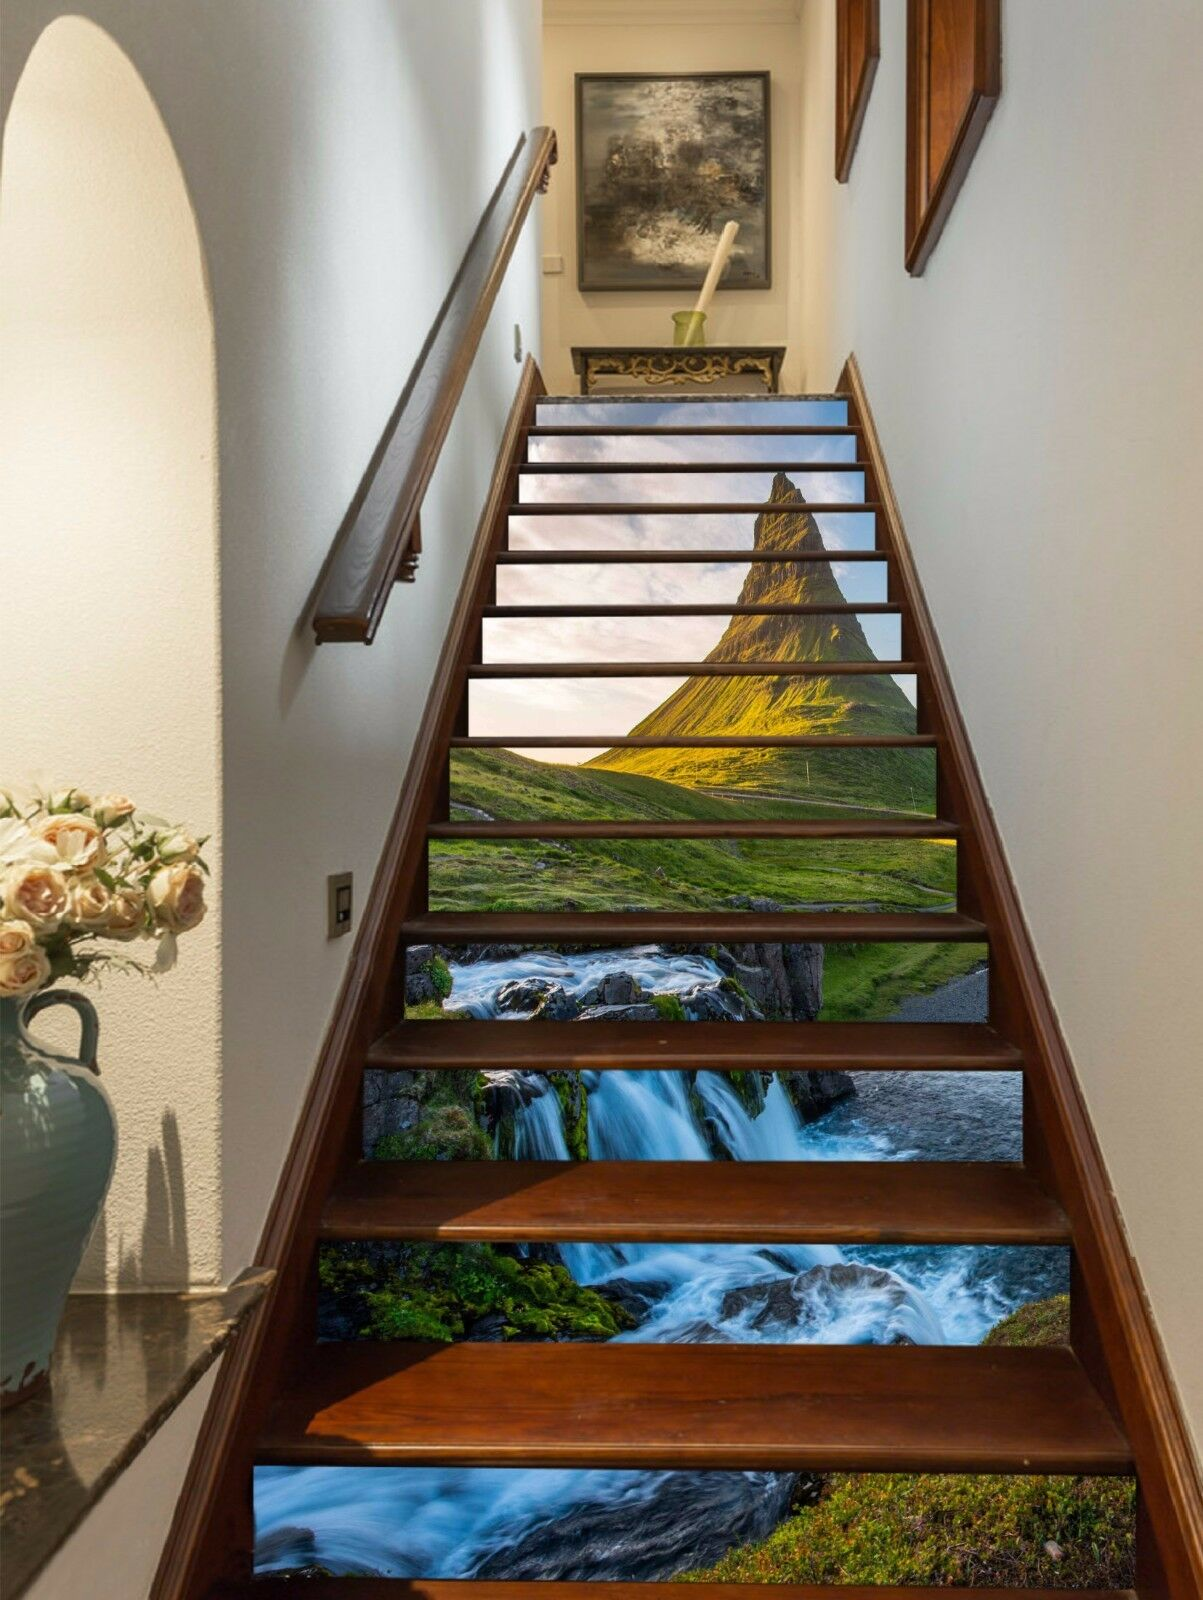 3D Hill Peak 023 Stair Risers Decoration Photo Mural Vinyl Decal Wallpaper AU